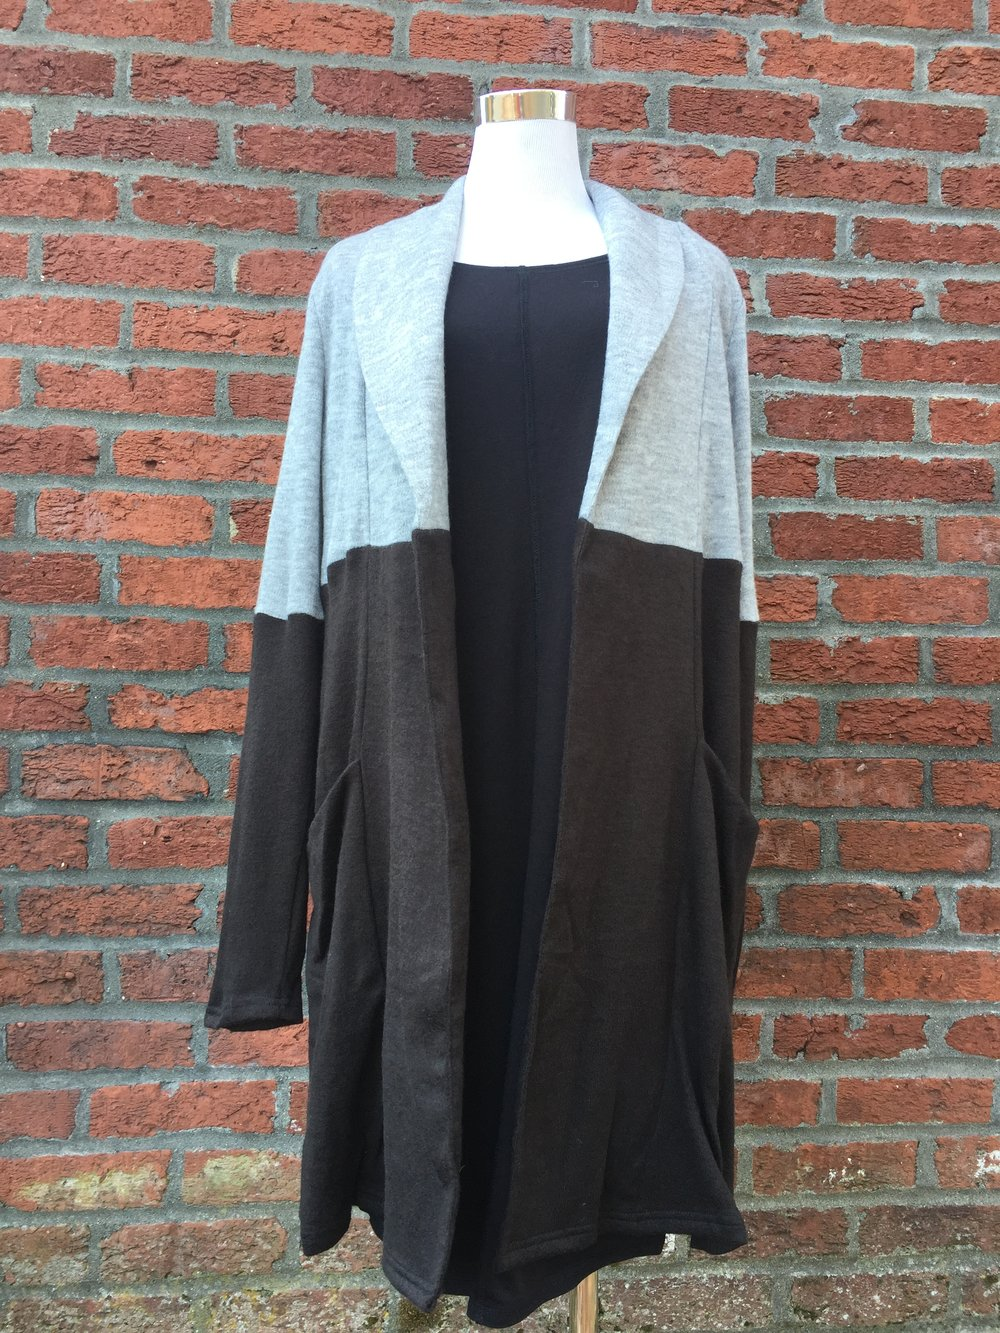 Two-tone Sweater Coat ($42)